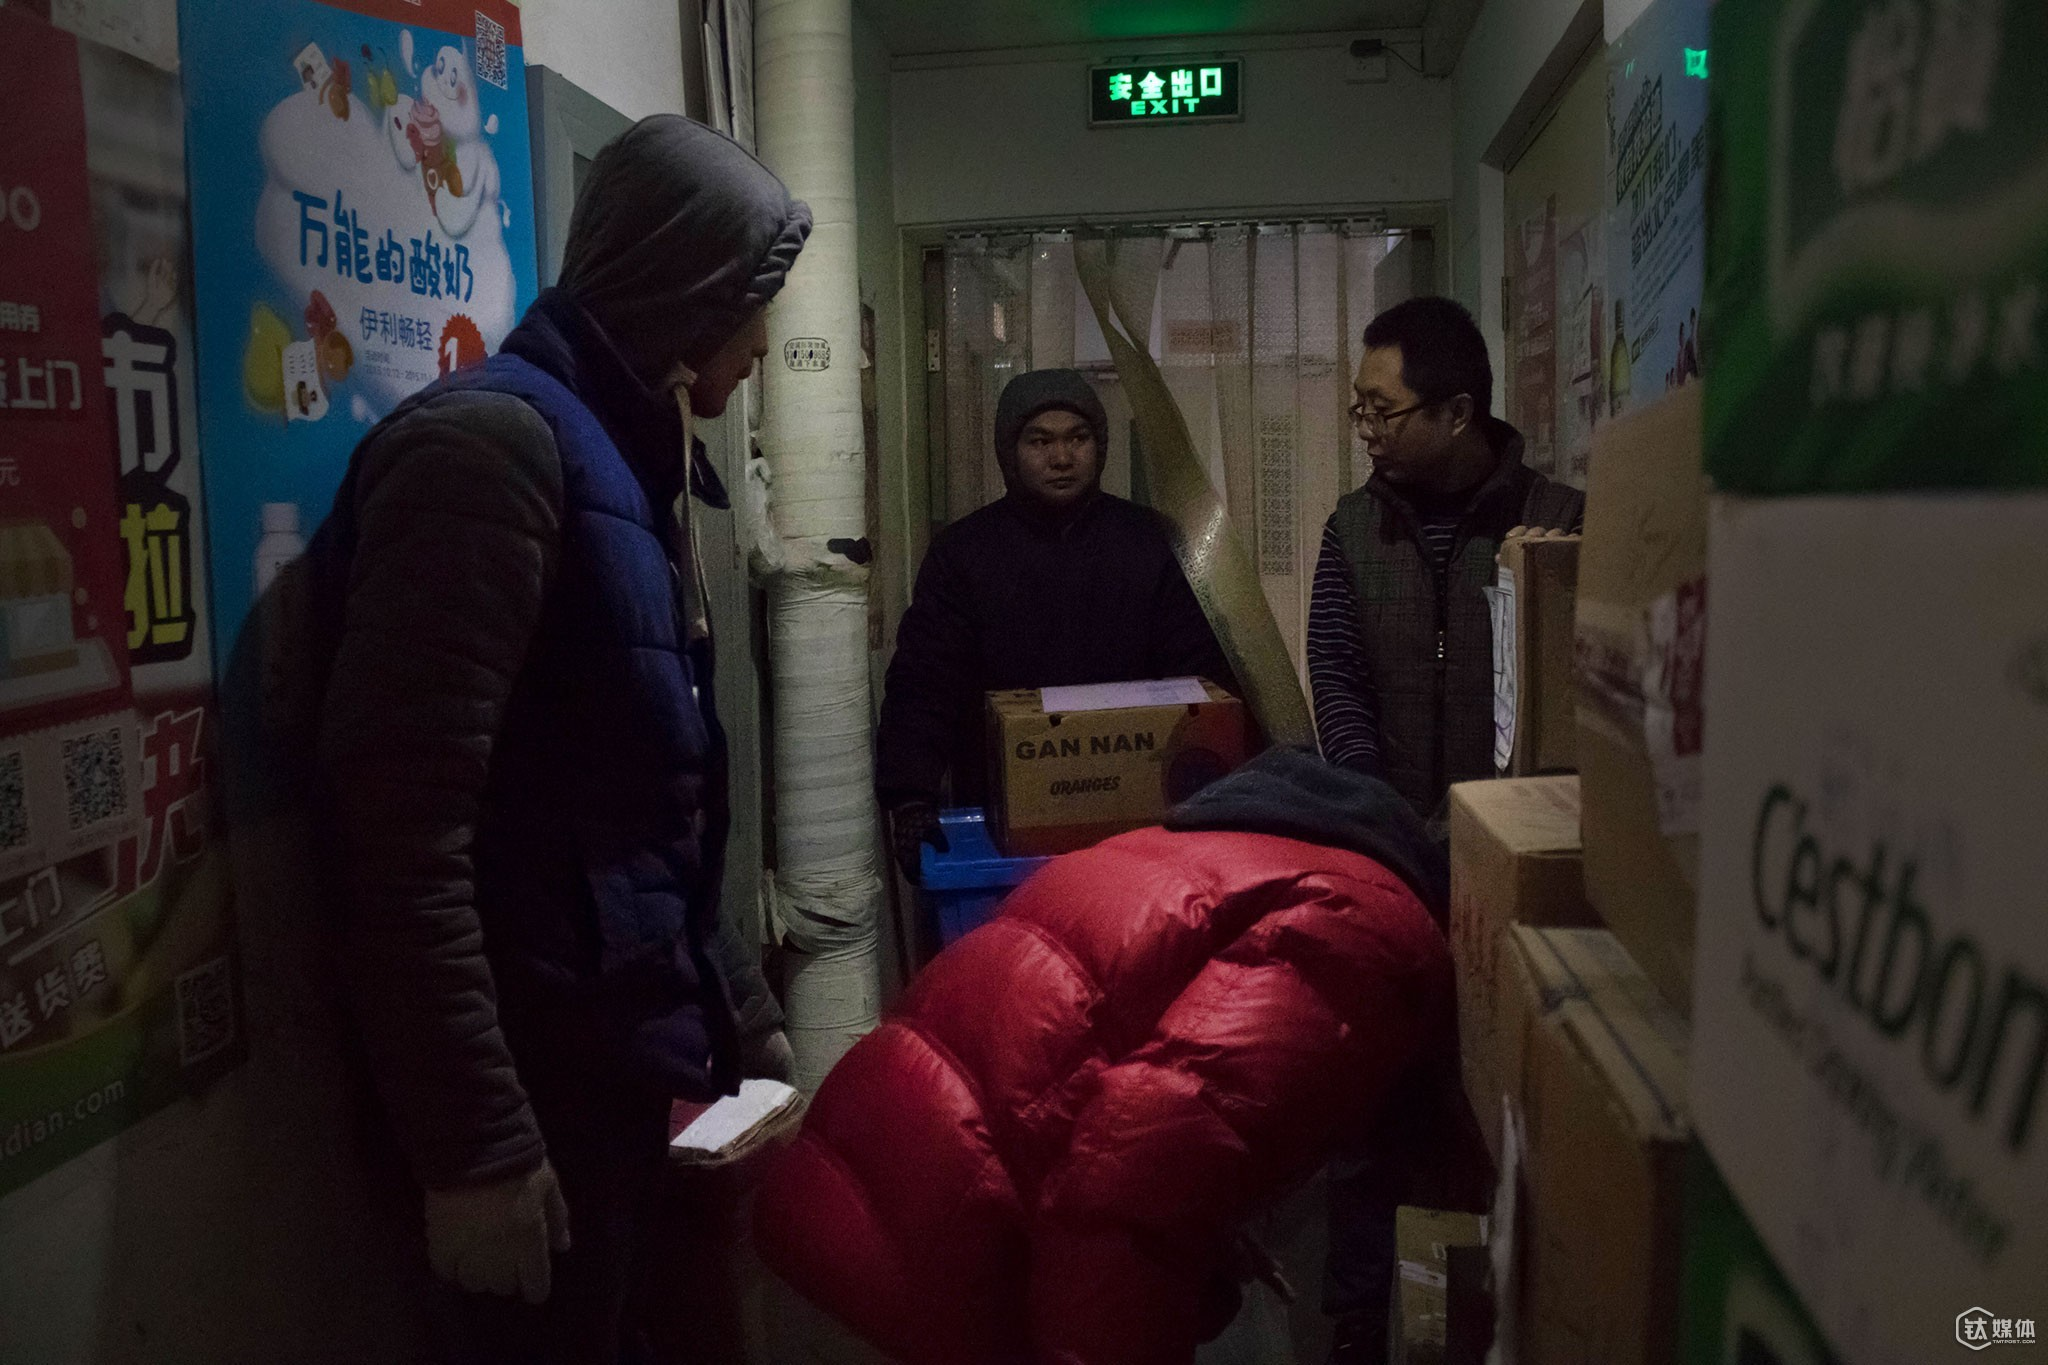 At 11:30 am, several deliverymen got packed up in the abbey outside of the convenience store. At most deliverymen from 20 express companies would send parcels here every day. Some deliverymen just piled up the parcels in the abbey since the convenience was too small to hold all the parcels.